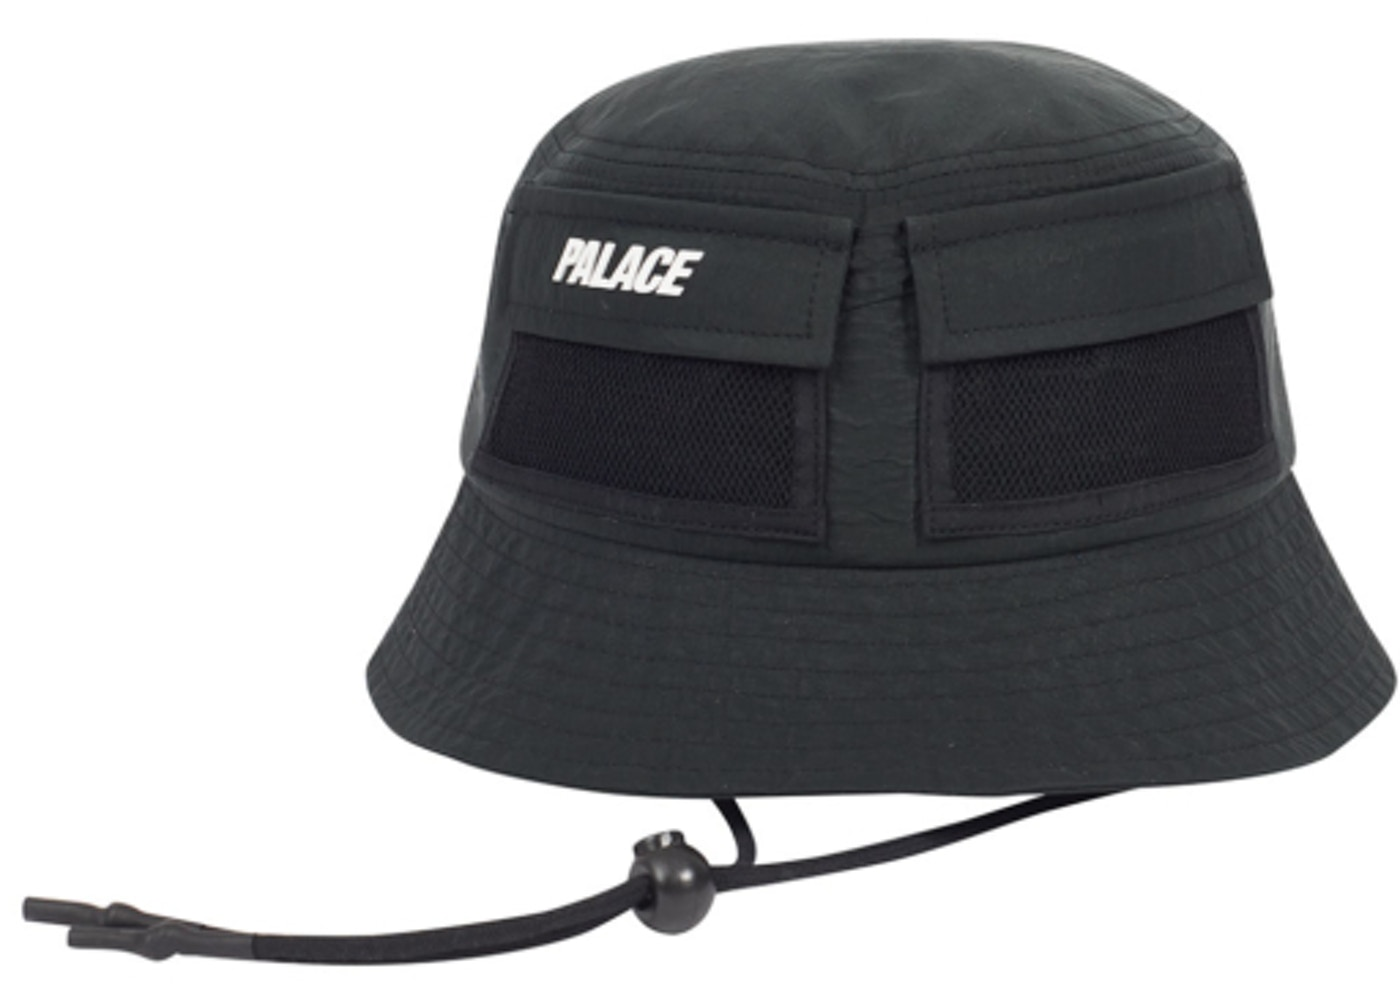 07d64940317 View All Bids. Palace Utility Shell Bucket Hat Black. Utility Shell